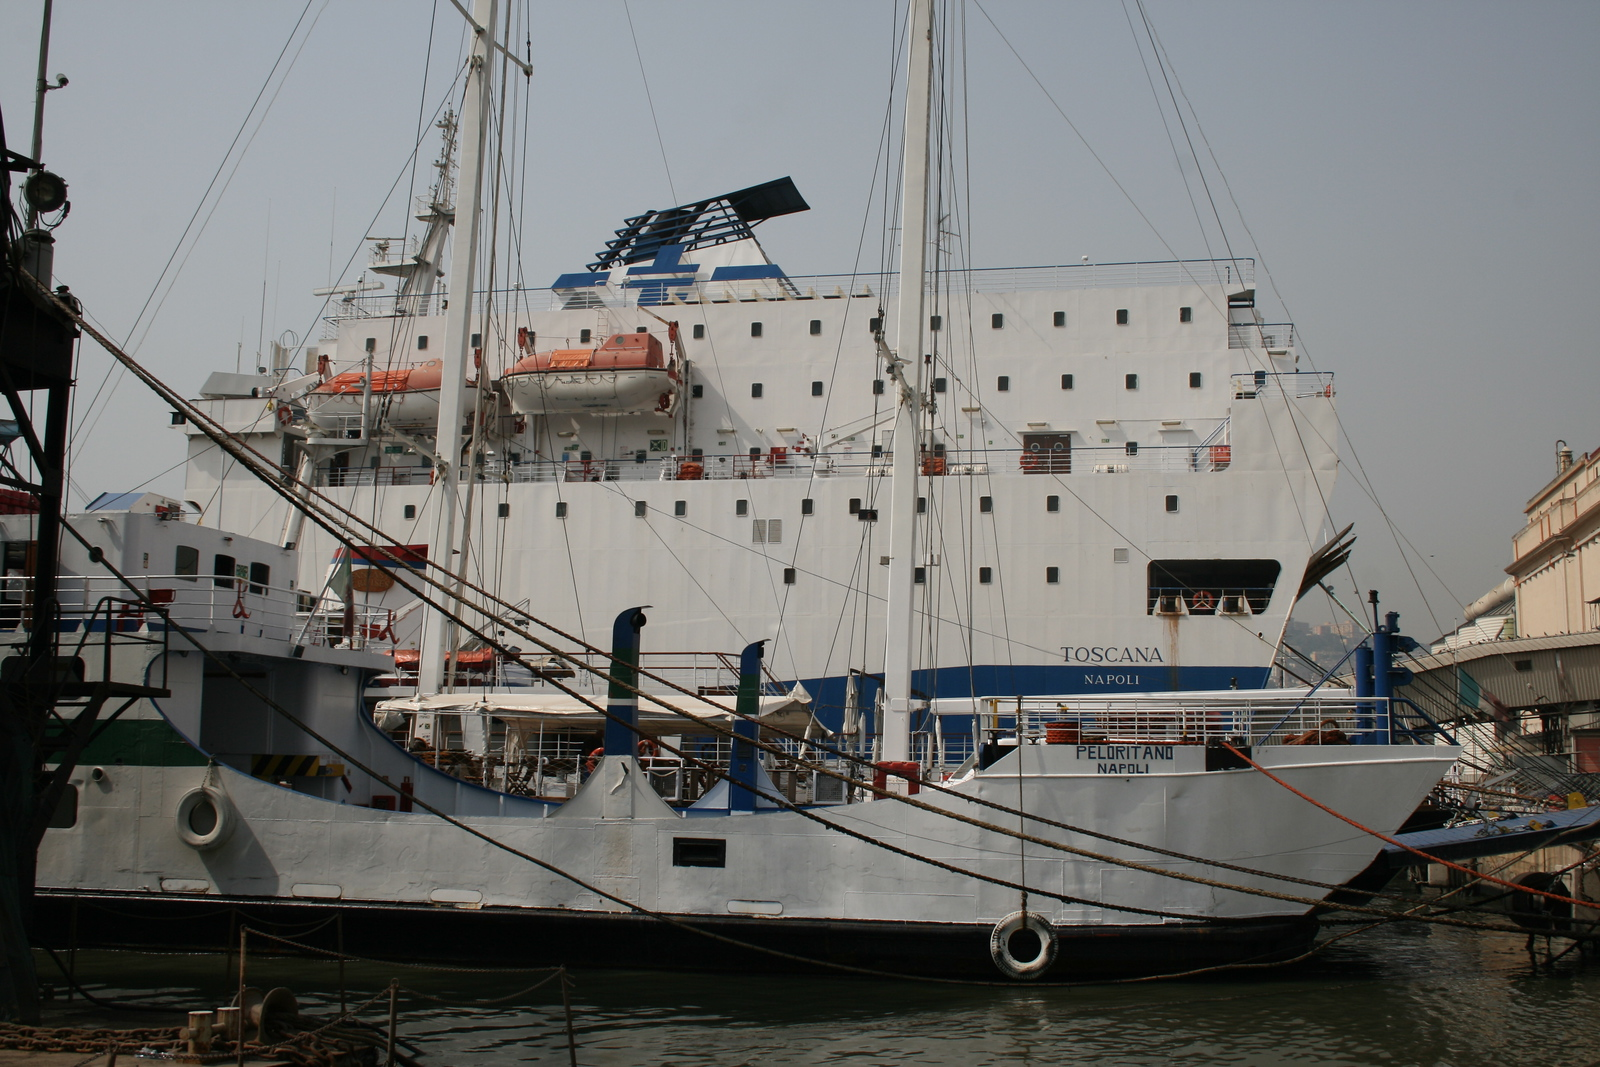 2008 - F/B PELORITANO laid up in Napoli. At side F/B TOSCANA in repairing works.